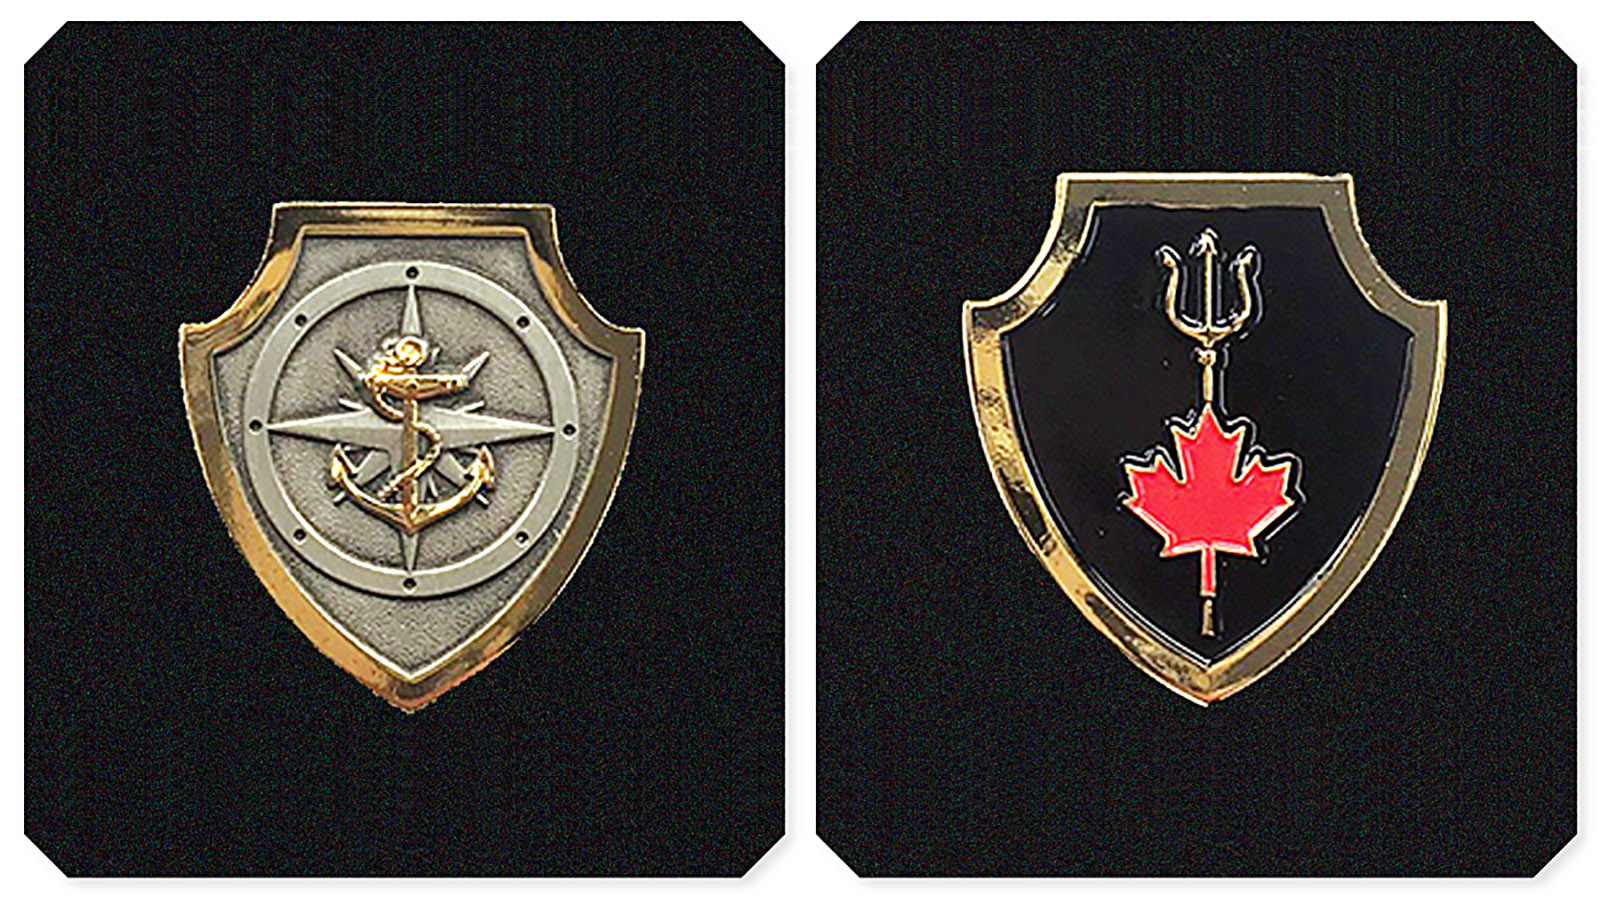 From left: The Naval Boarding Party Basic Qualification badge and the Naval Tactical Operations Group Qualification badge.